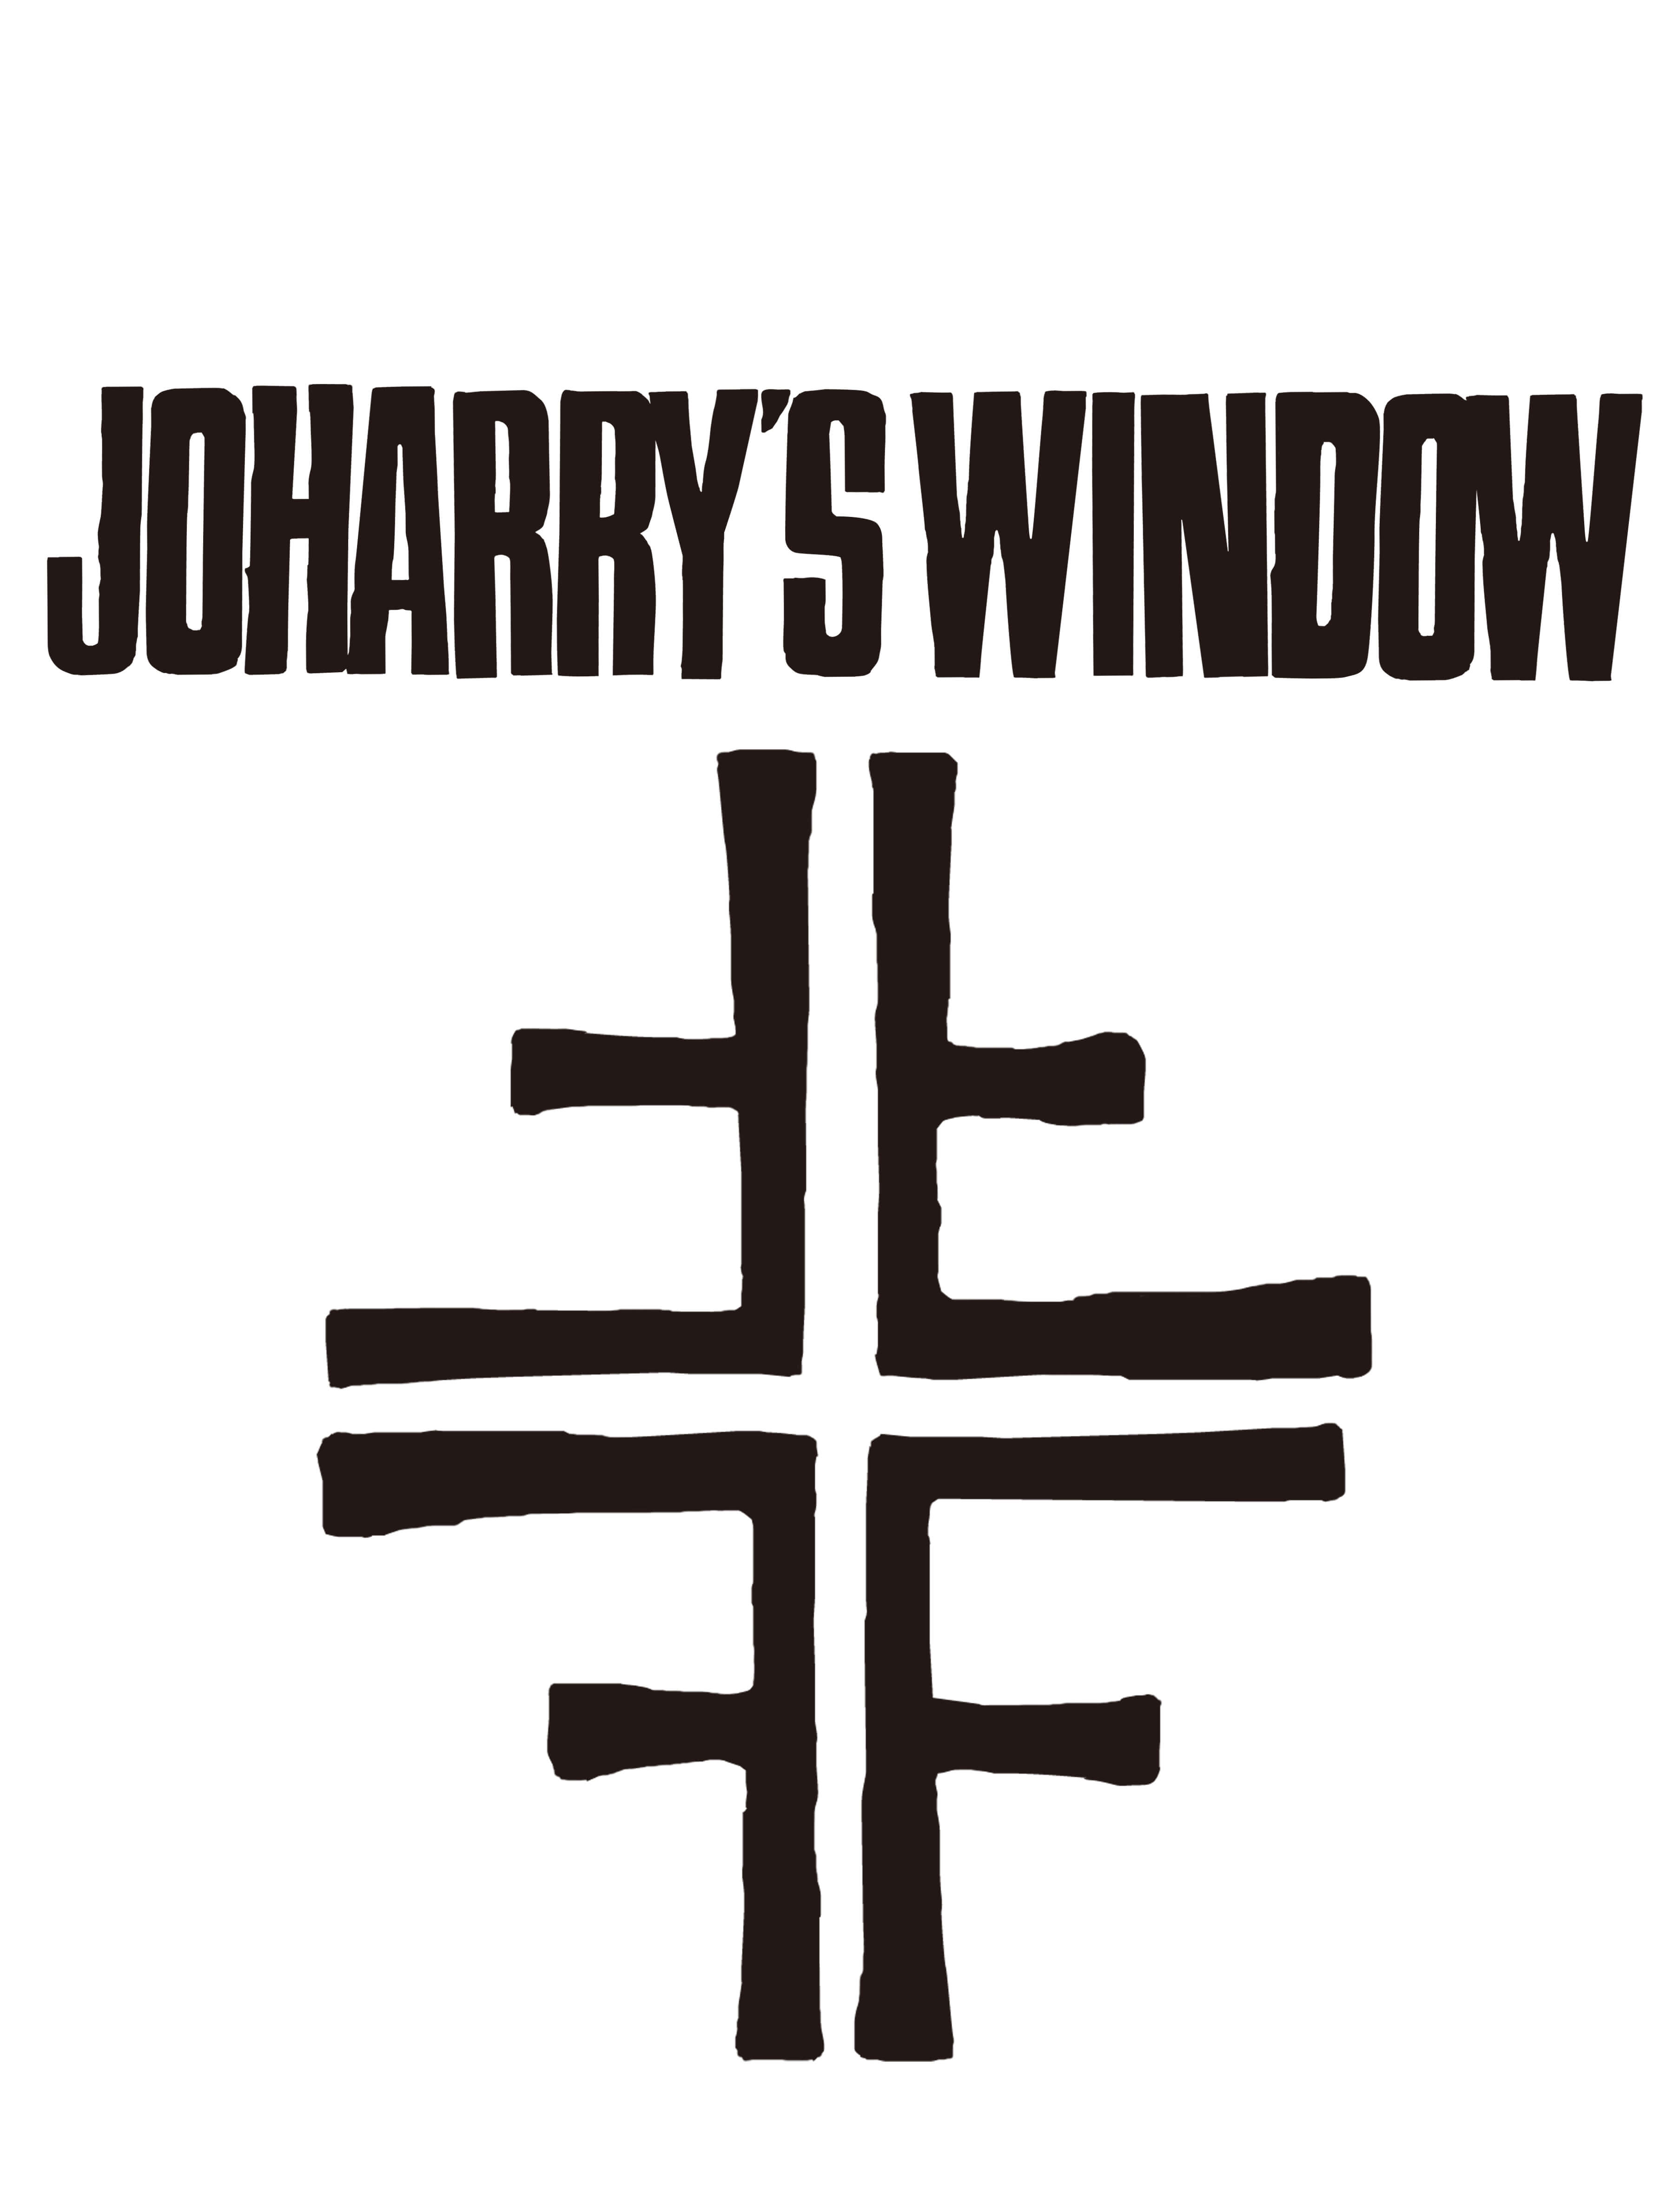 JOHARRY'S WINDOW / Wasted Life